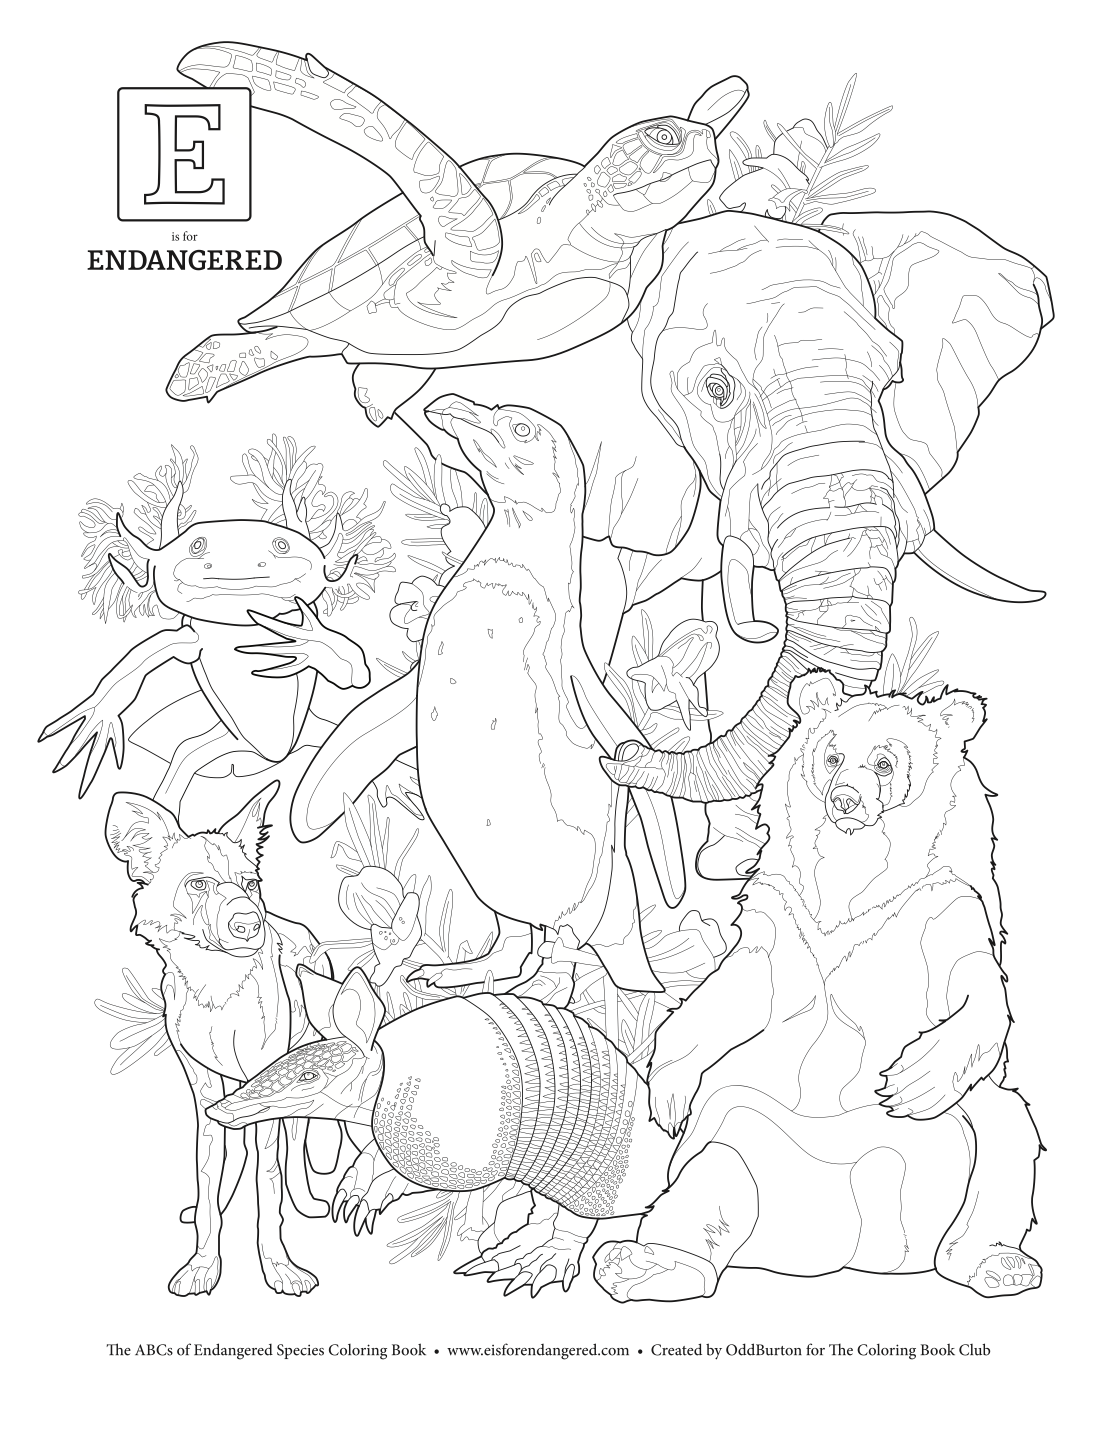 This FREE coloring page is ONLY available from the Coloring Book Club.